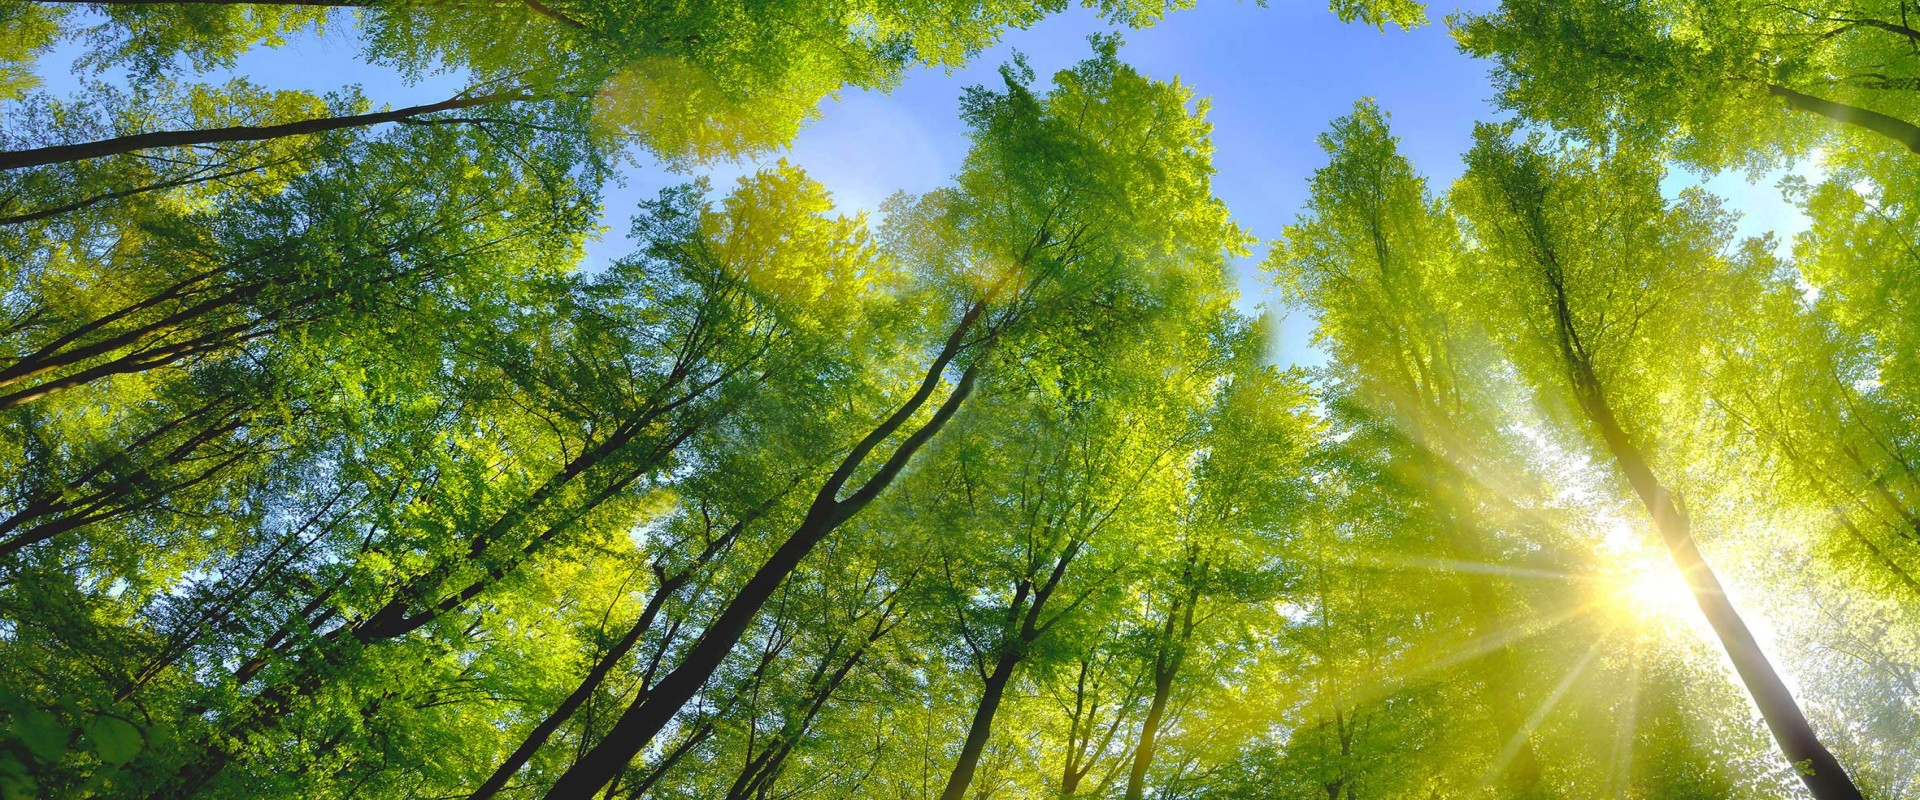 Deciduous forest with green leaves in sun light and blue sky above